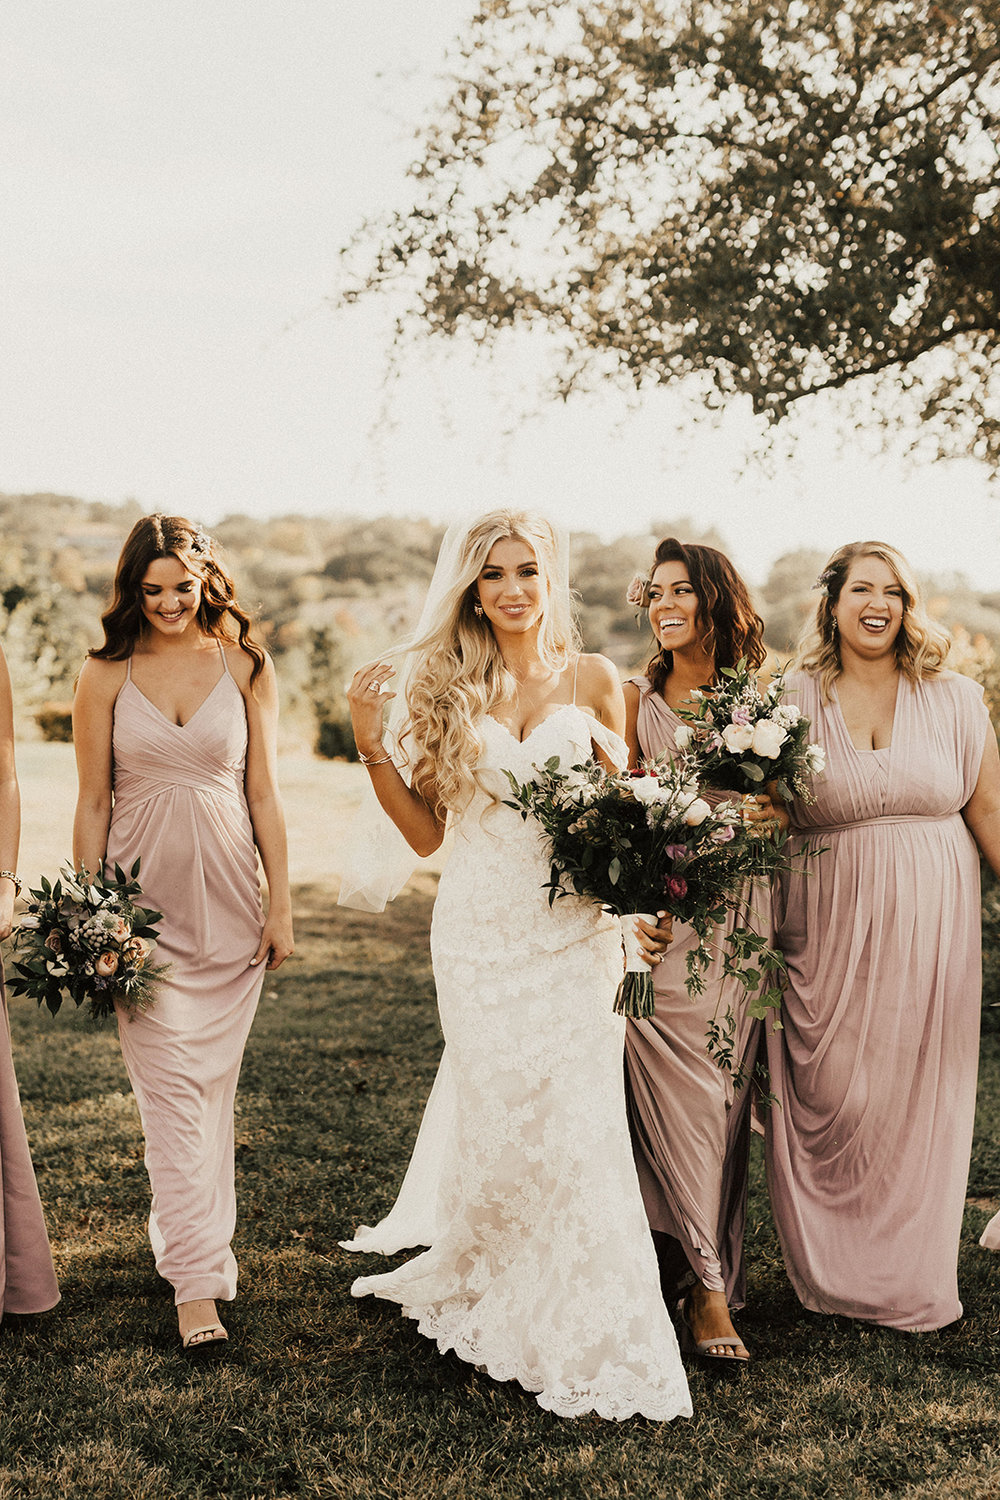 allie-tyler-vintage-villas-austin-texas-wedding-photographer-1536.jpg